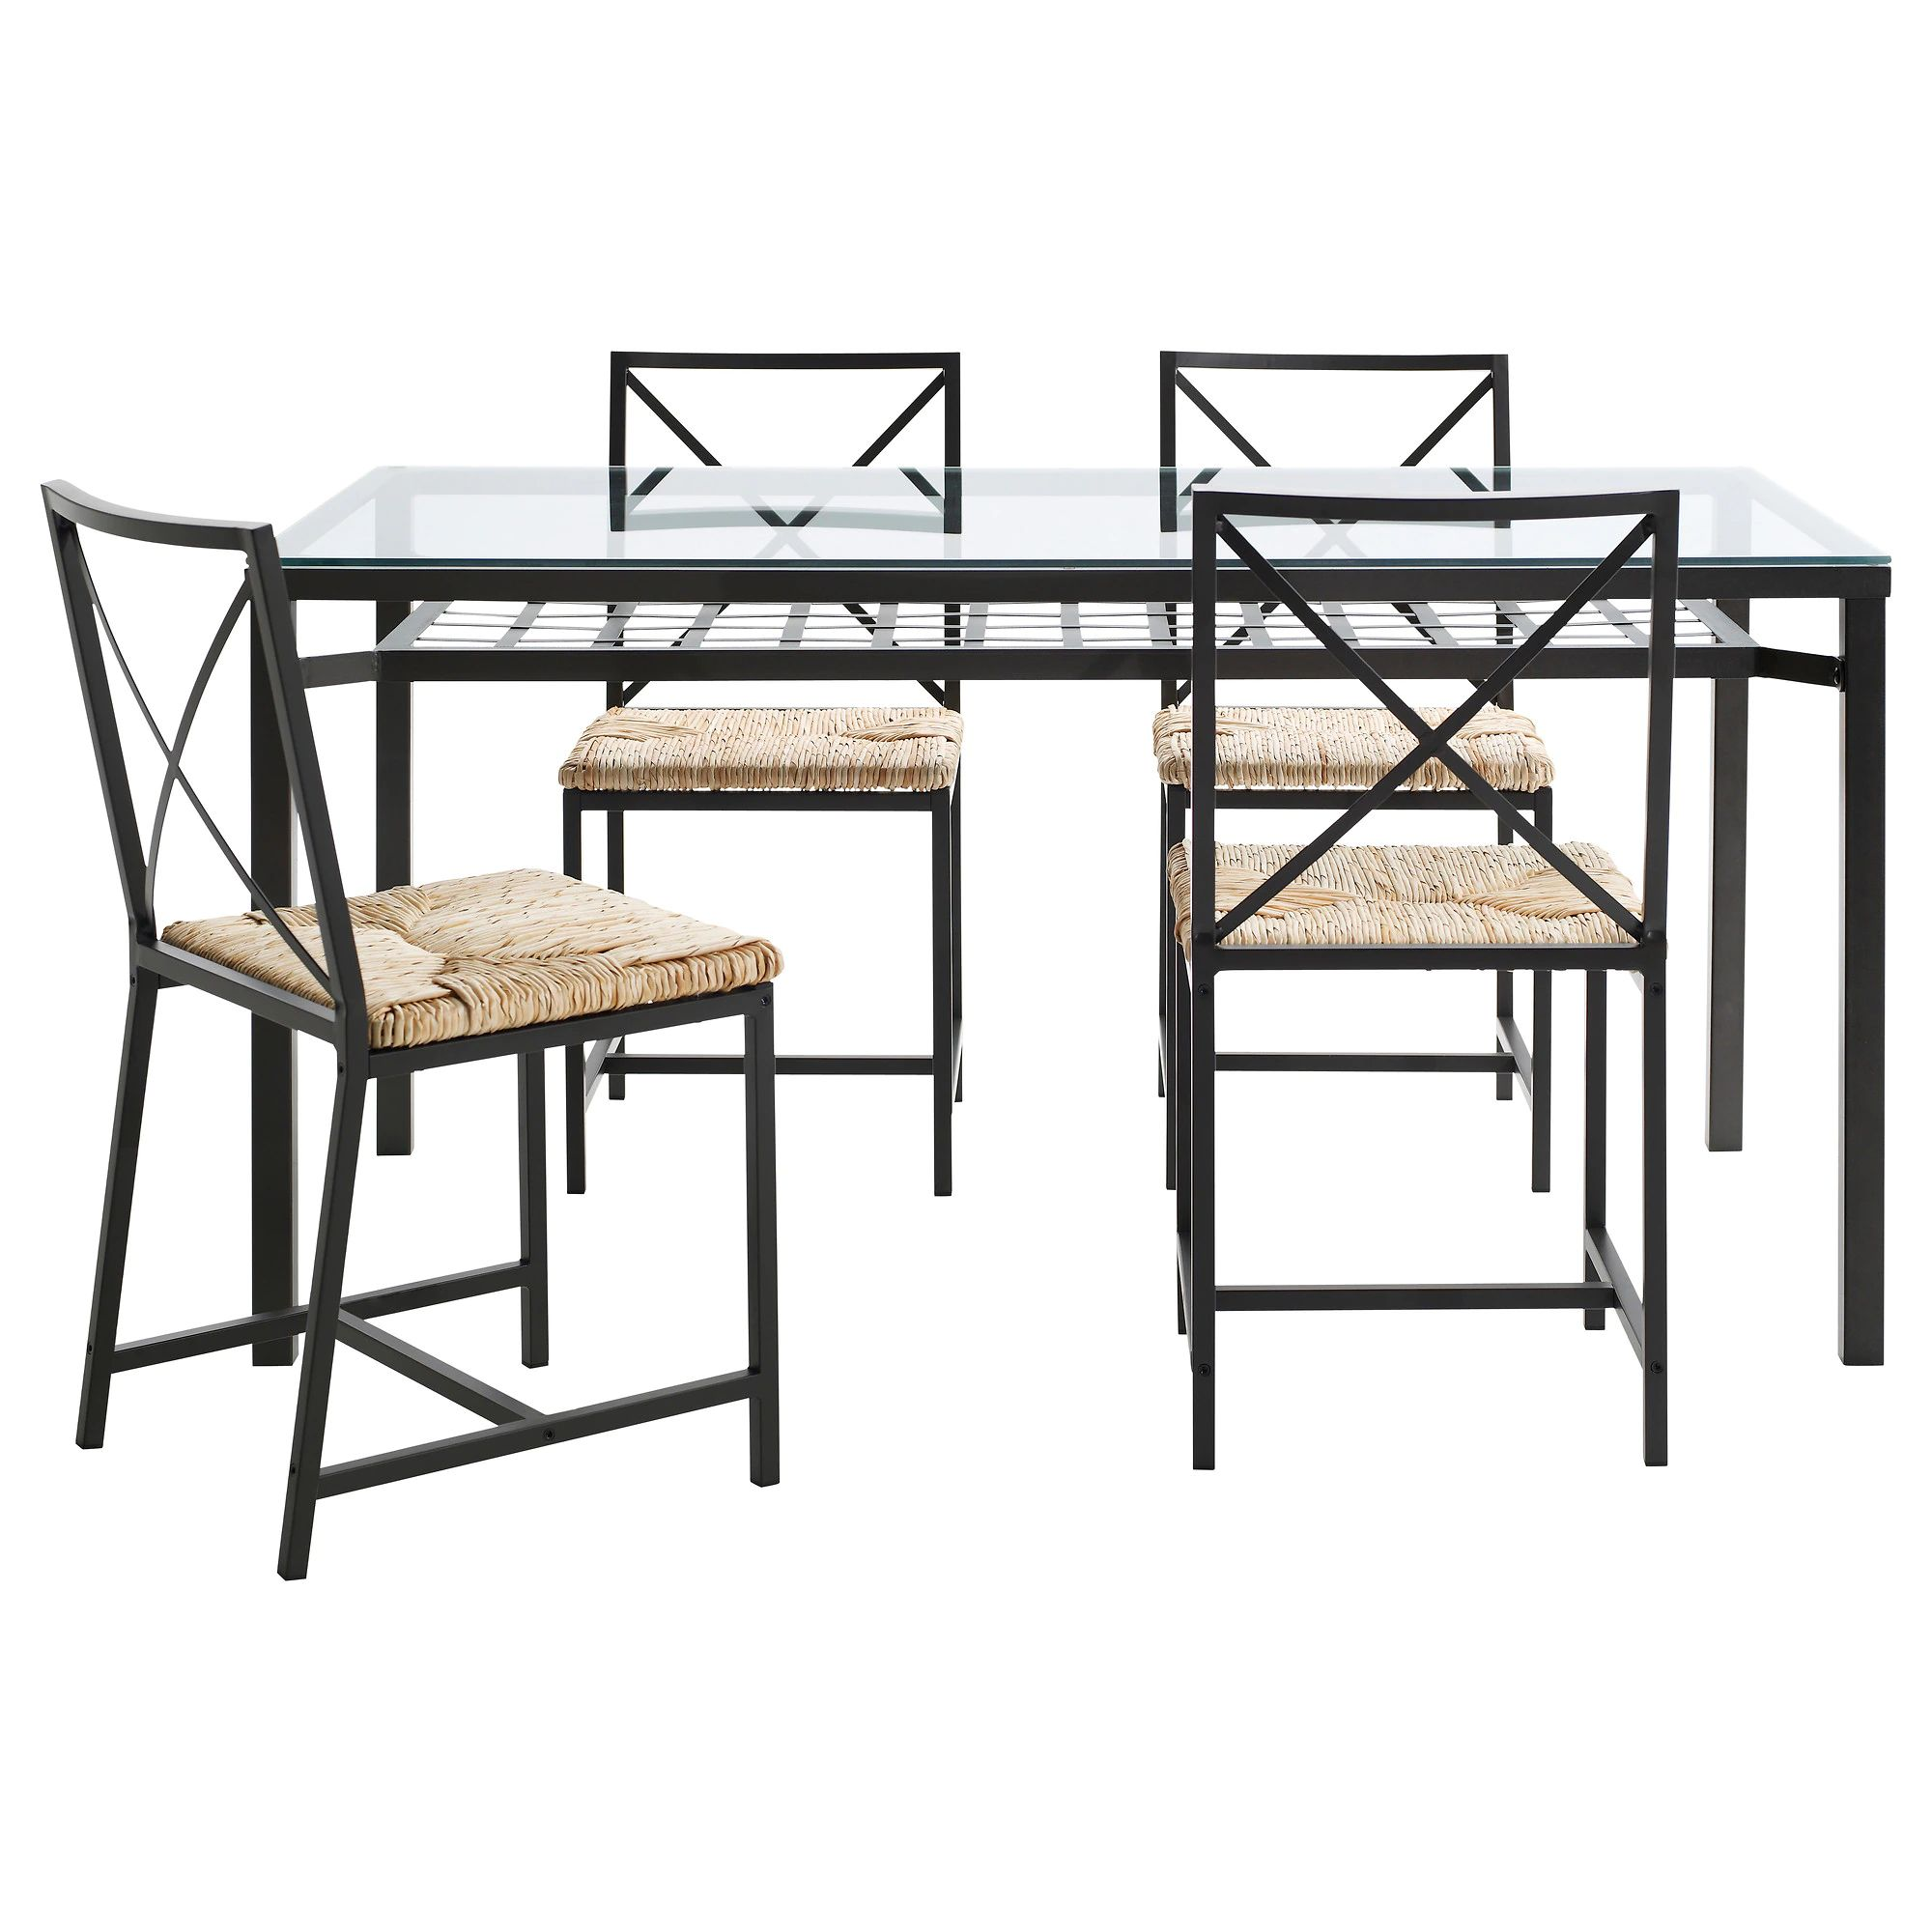 Gran s table and 4 chairs black glass table length 57 1 2